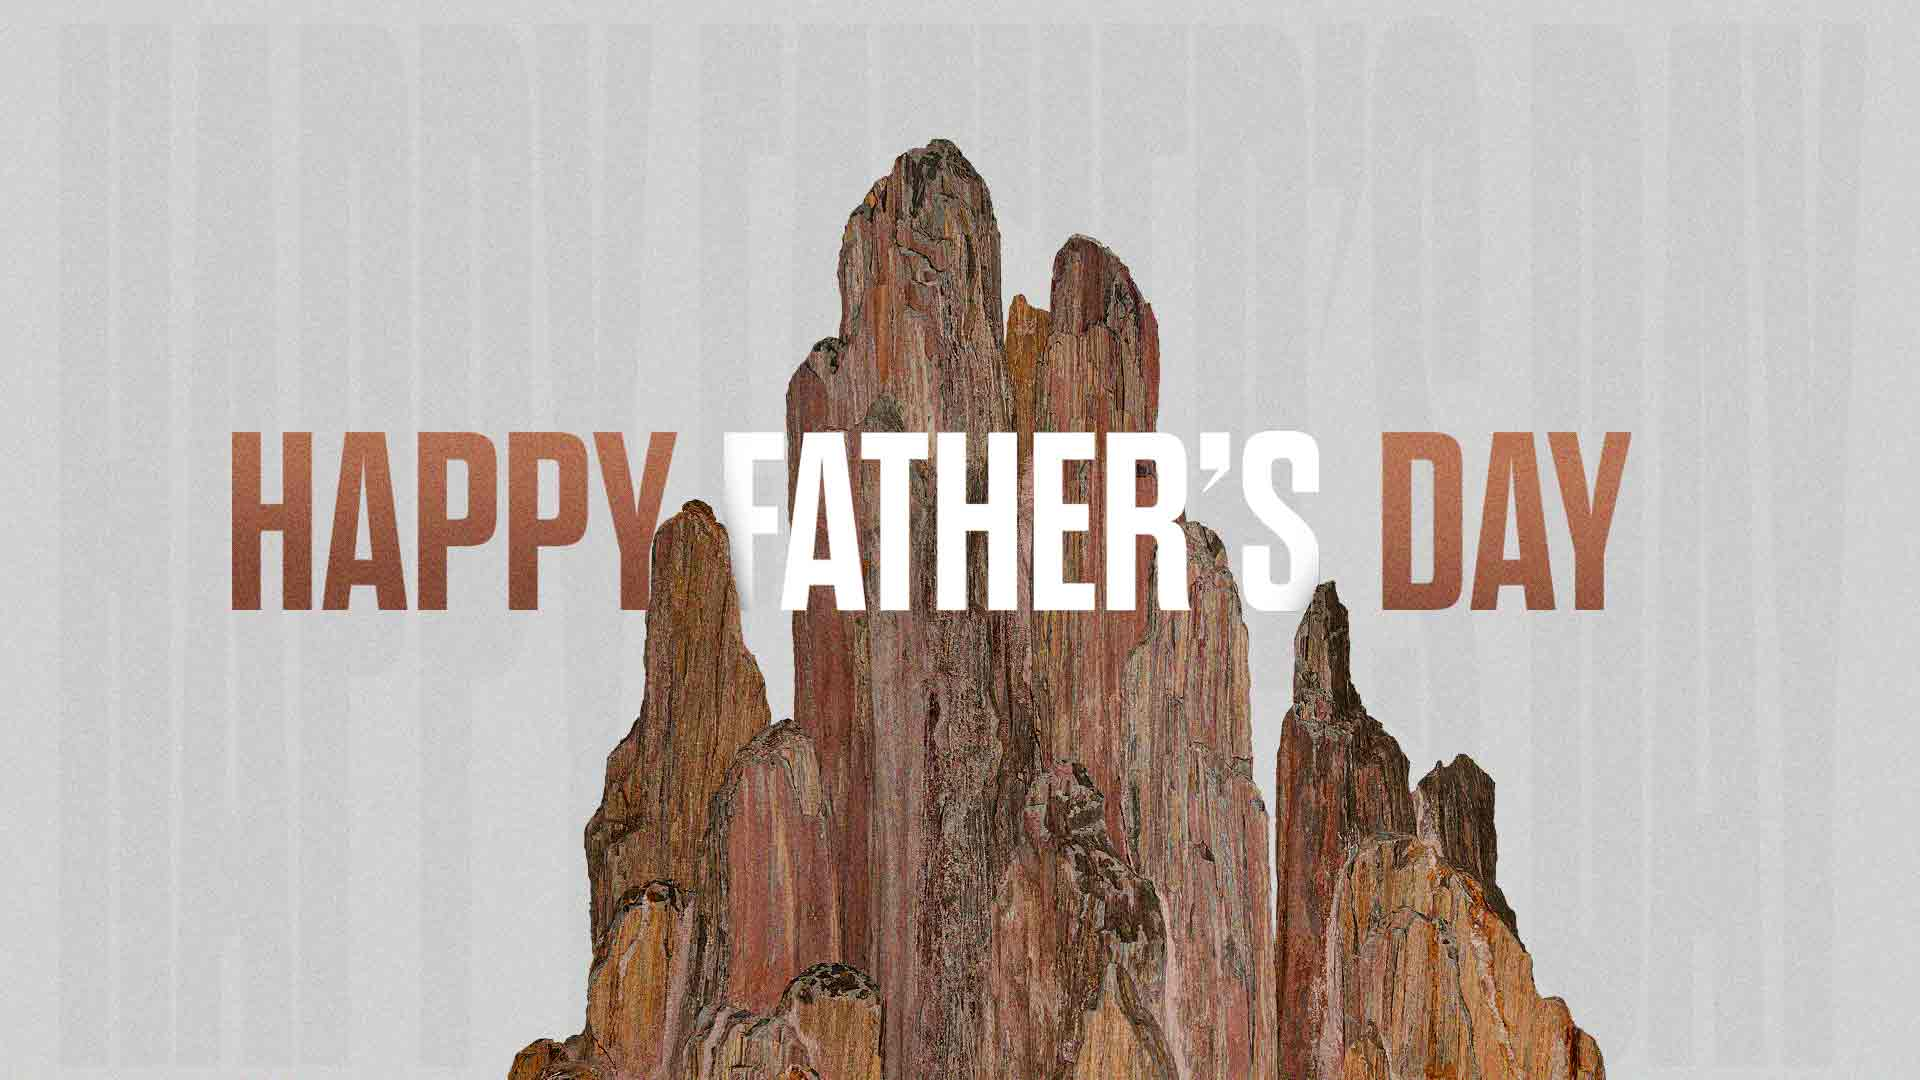 Happy-Father's-Day_Title-Slide